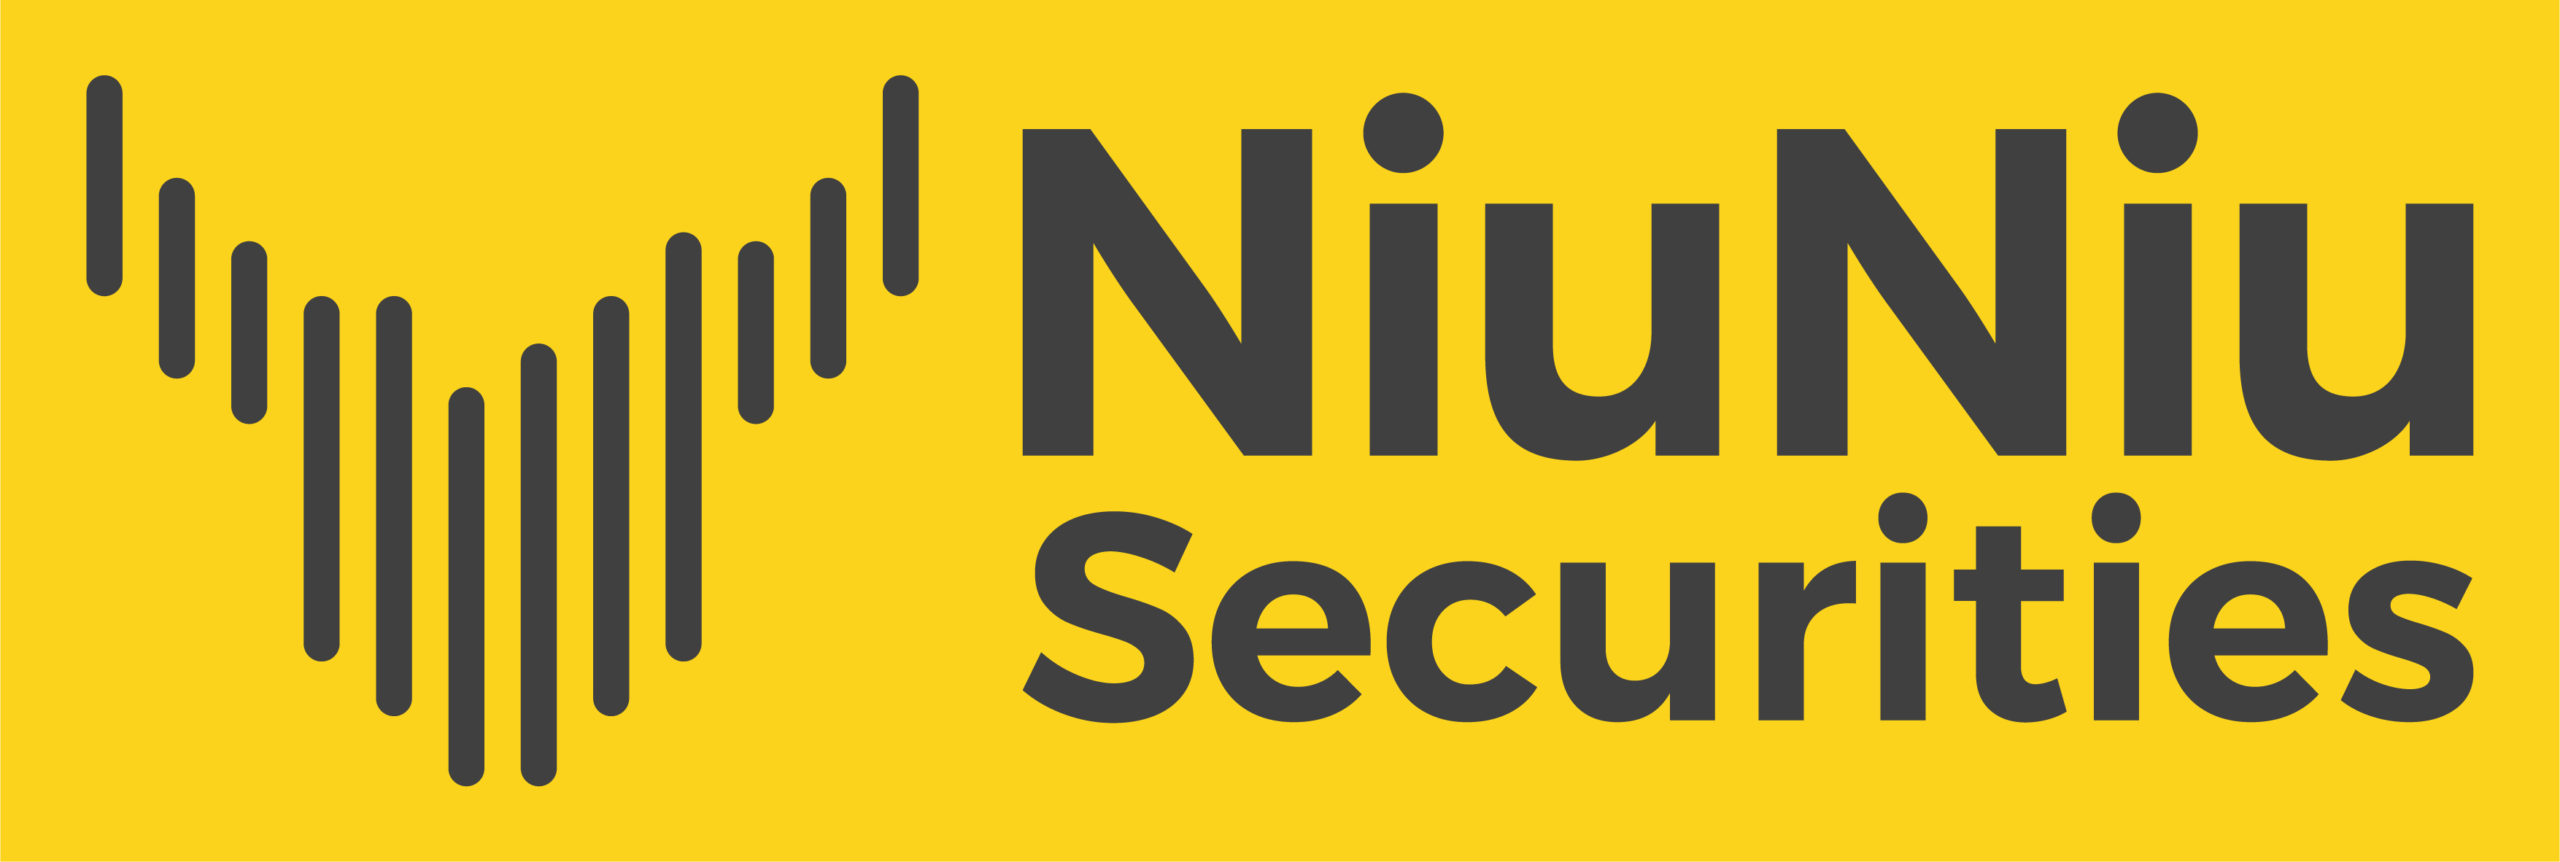 NiuNiu Securities | Hong Kong Stocks Account Opening | US Stocks Account Opening | Australian Stocks Account Opening | European Stocks Account Opening | Hong Kong Stocks Quotes | US Stocks Quotes | Australian Stocks Quotes | European Stocks Quotes | Preferred One-stop Investment Platform | Youth is your capital